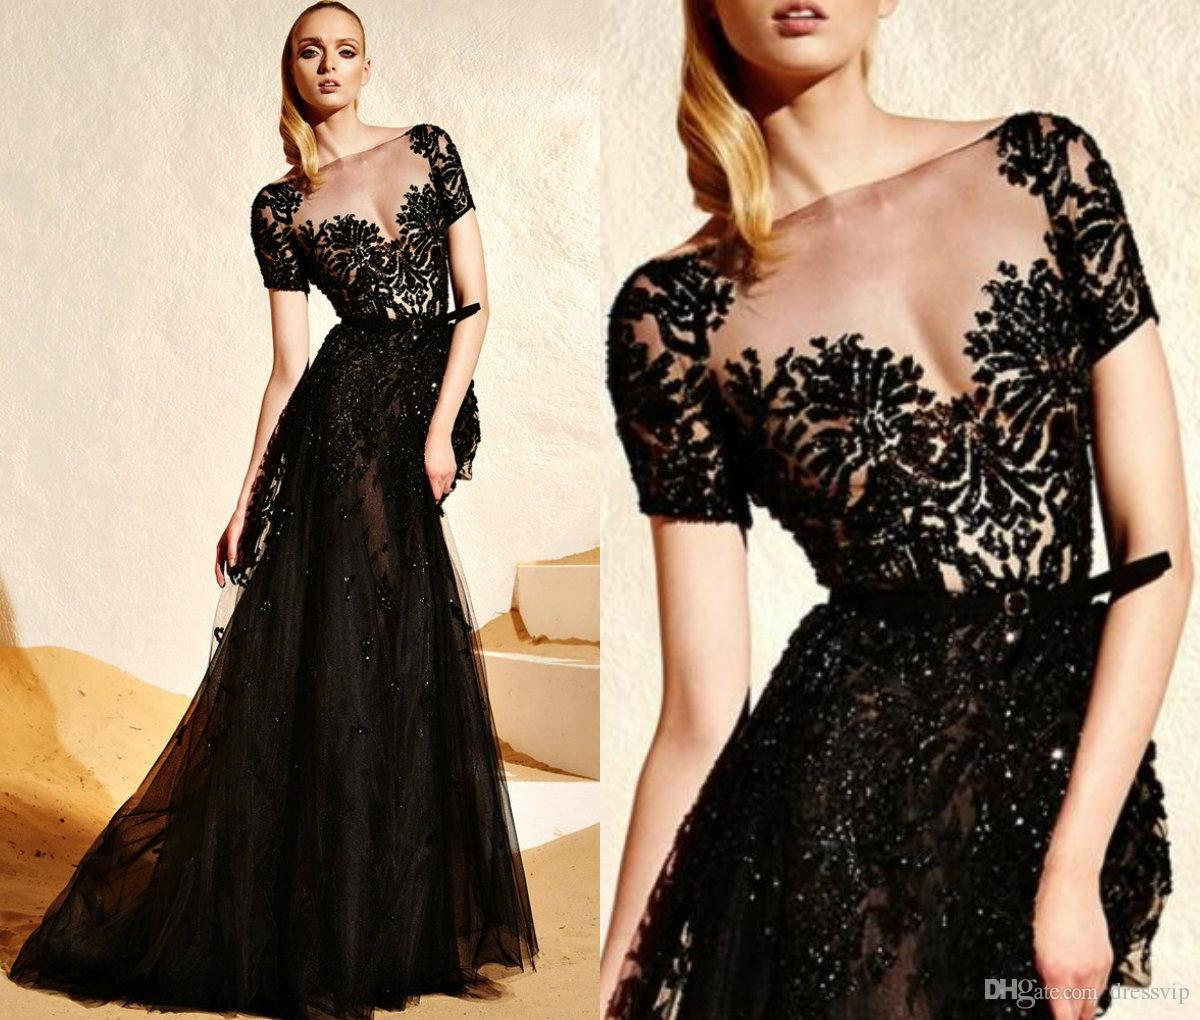 9e86d585b27 2018 Zuhair Murad Evening Dresses Black Lace Applique Beaded Illusion Short  Sleeve Sexy Sweep Train Formal Dress Party Wear Prom Dress Plus Dresses  Plus ...